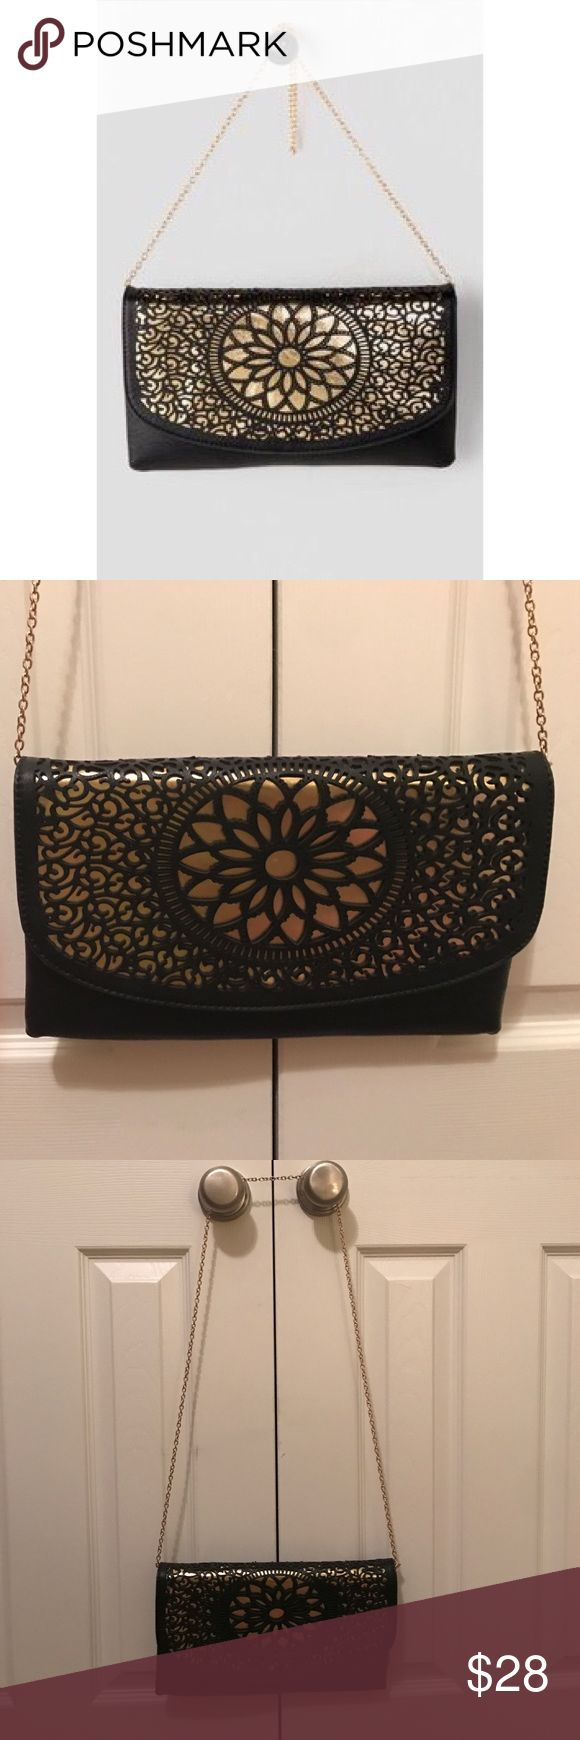 "Laser Cut Crossbody Purse Black floral laser cut design envelope clutch with gold inlay. Zips shut and has magnetic closure. 24"" Removable gold shoulder strap. Dimensions: 12"" x 7"". Faux Leather. Inside zipper pocket. Rarely used. Melie Bianco Bags Clutches & Wristlets"